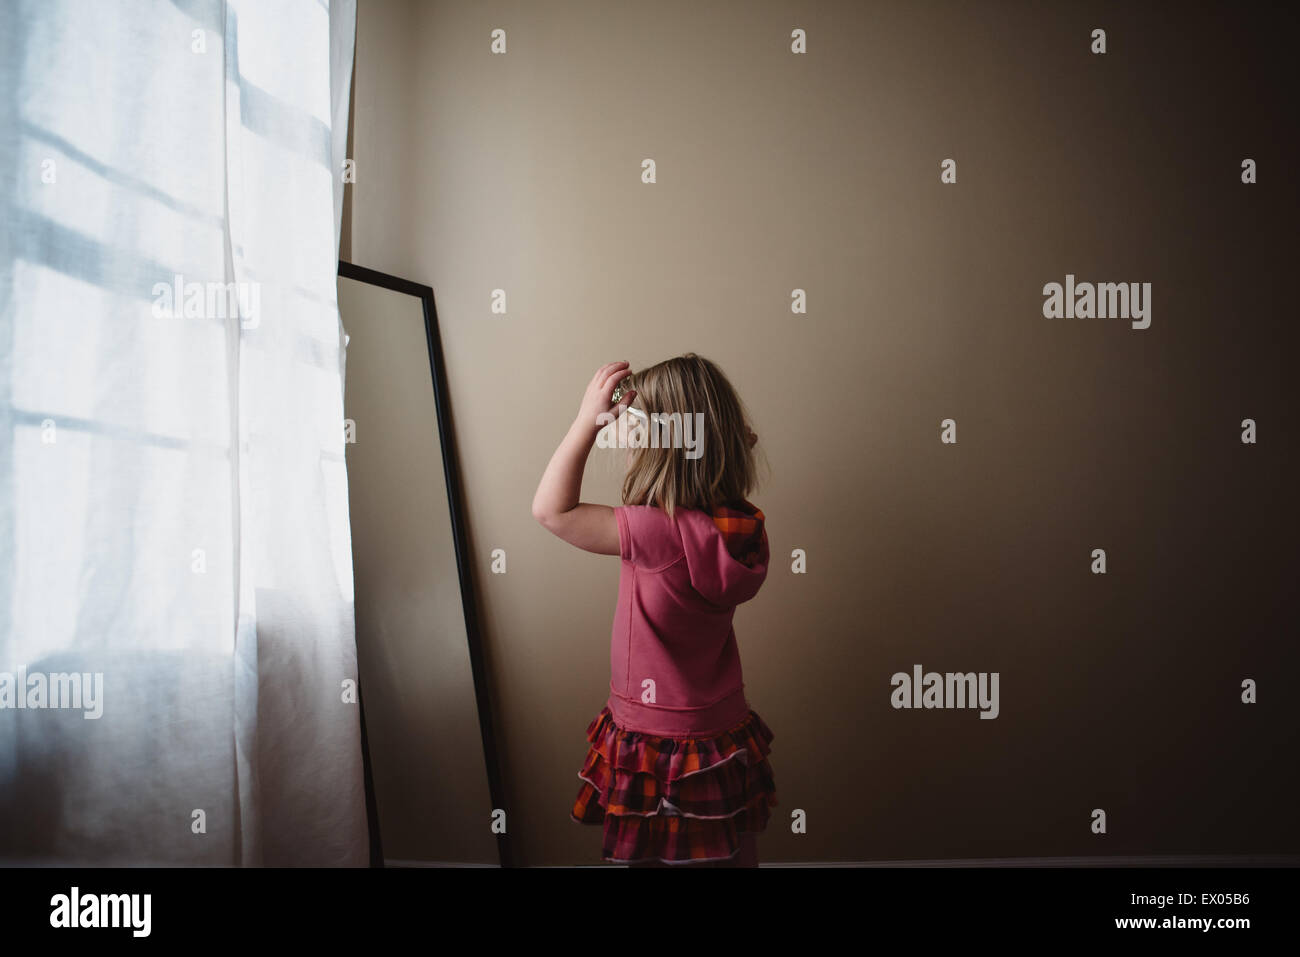 Young girl adjusting hairband in bedroom mirror - Stock Image